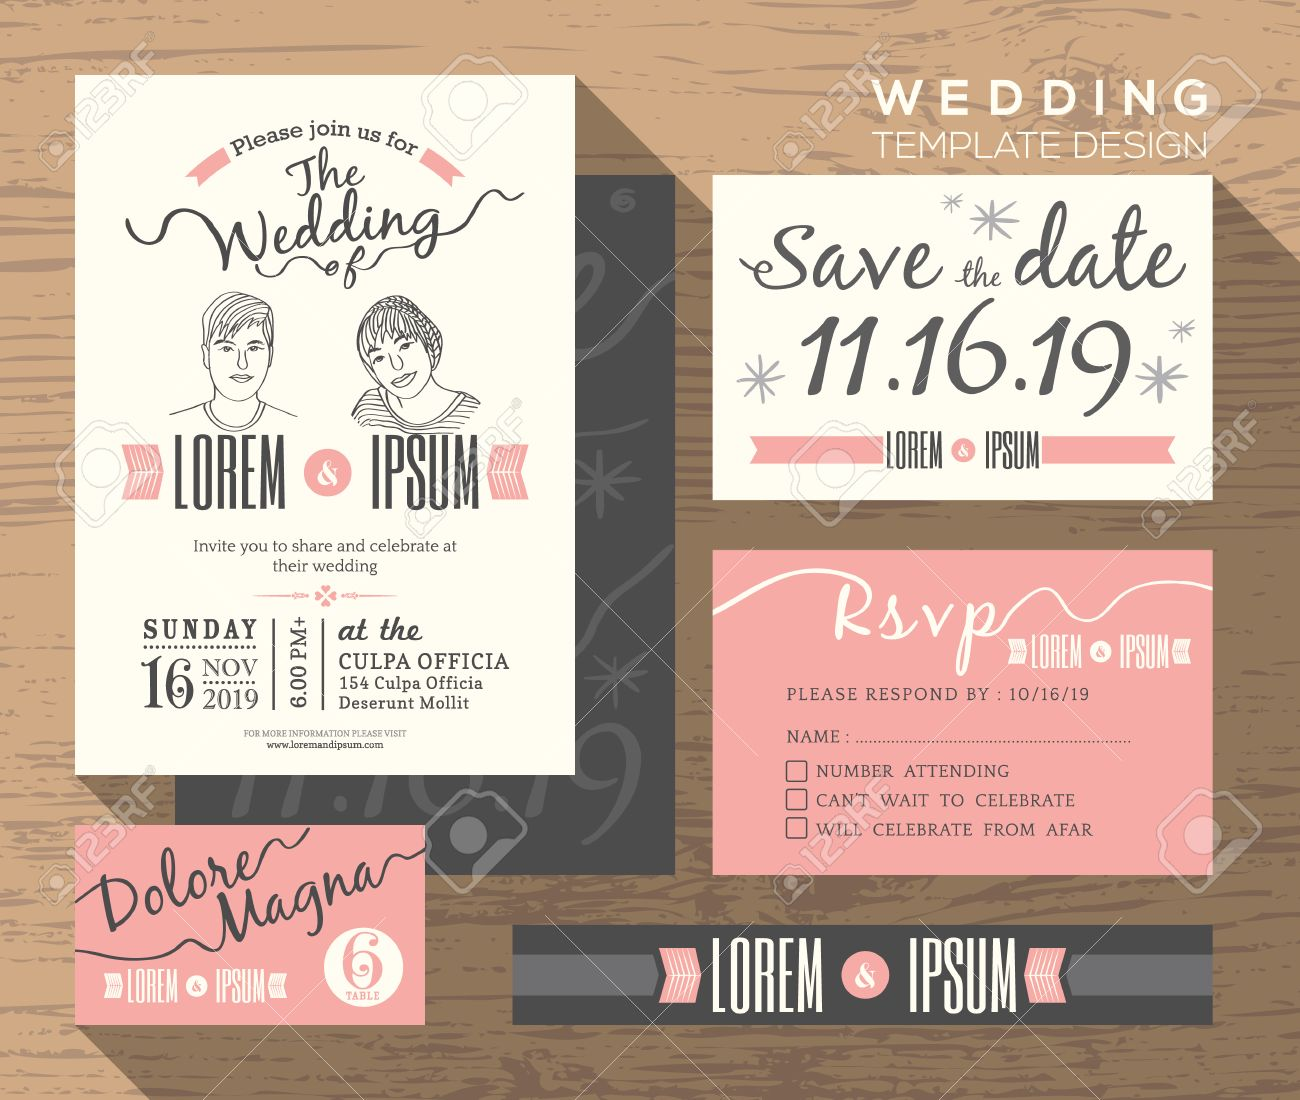 Wedding Invitation Set Design Template Vector Place Card Response – Save the Date Cards for Weddings